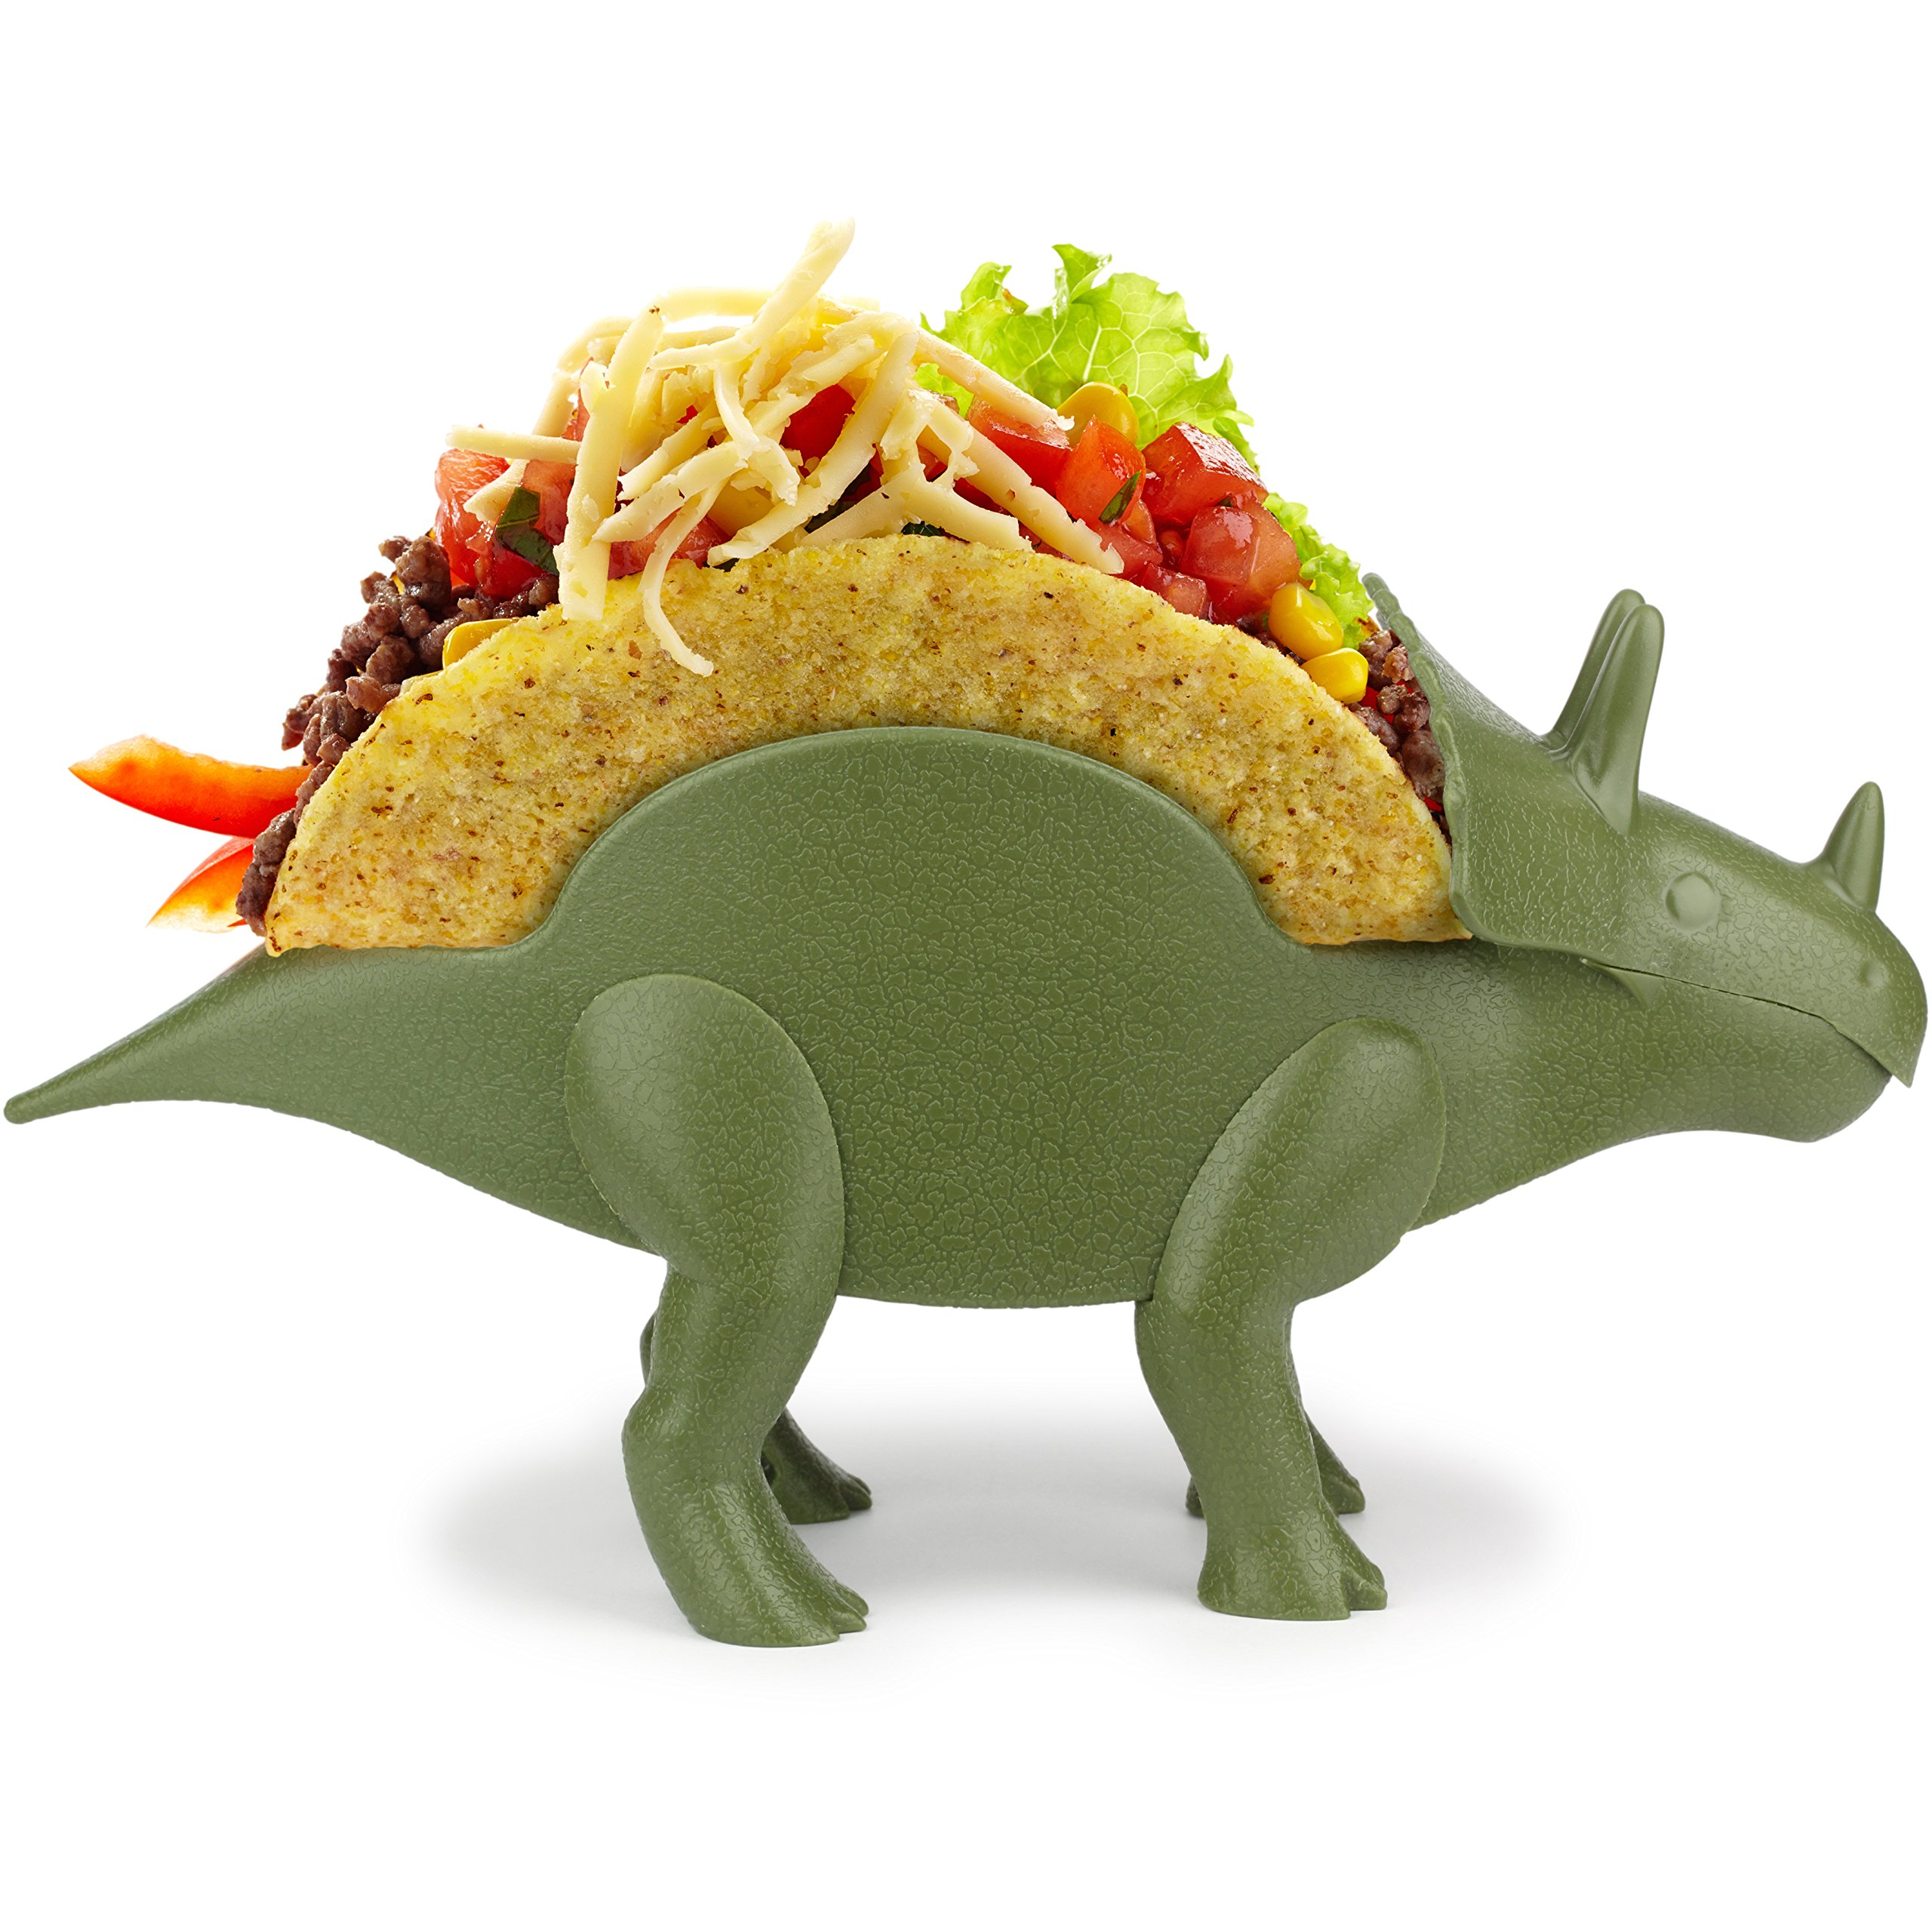 KidsFunwares TriceraTACO Taco Holder - The Ultimate Prehistoric Taco Stand for Jurassic Taco Tuesdays and Dinosaur Parties - Holds 2 Tacos - The Perfect Gift for Kids and Kidults that Love Dinosaurs by Barbuzzo